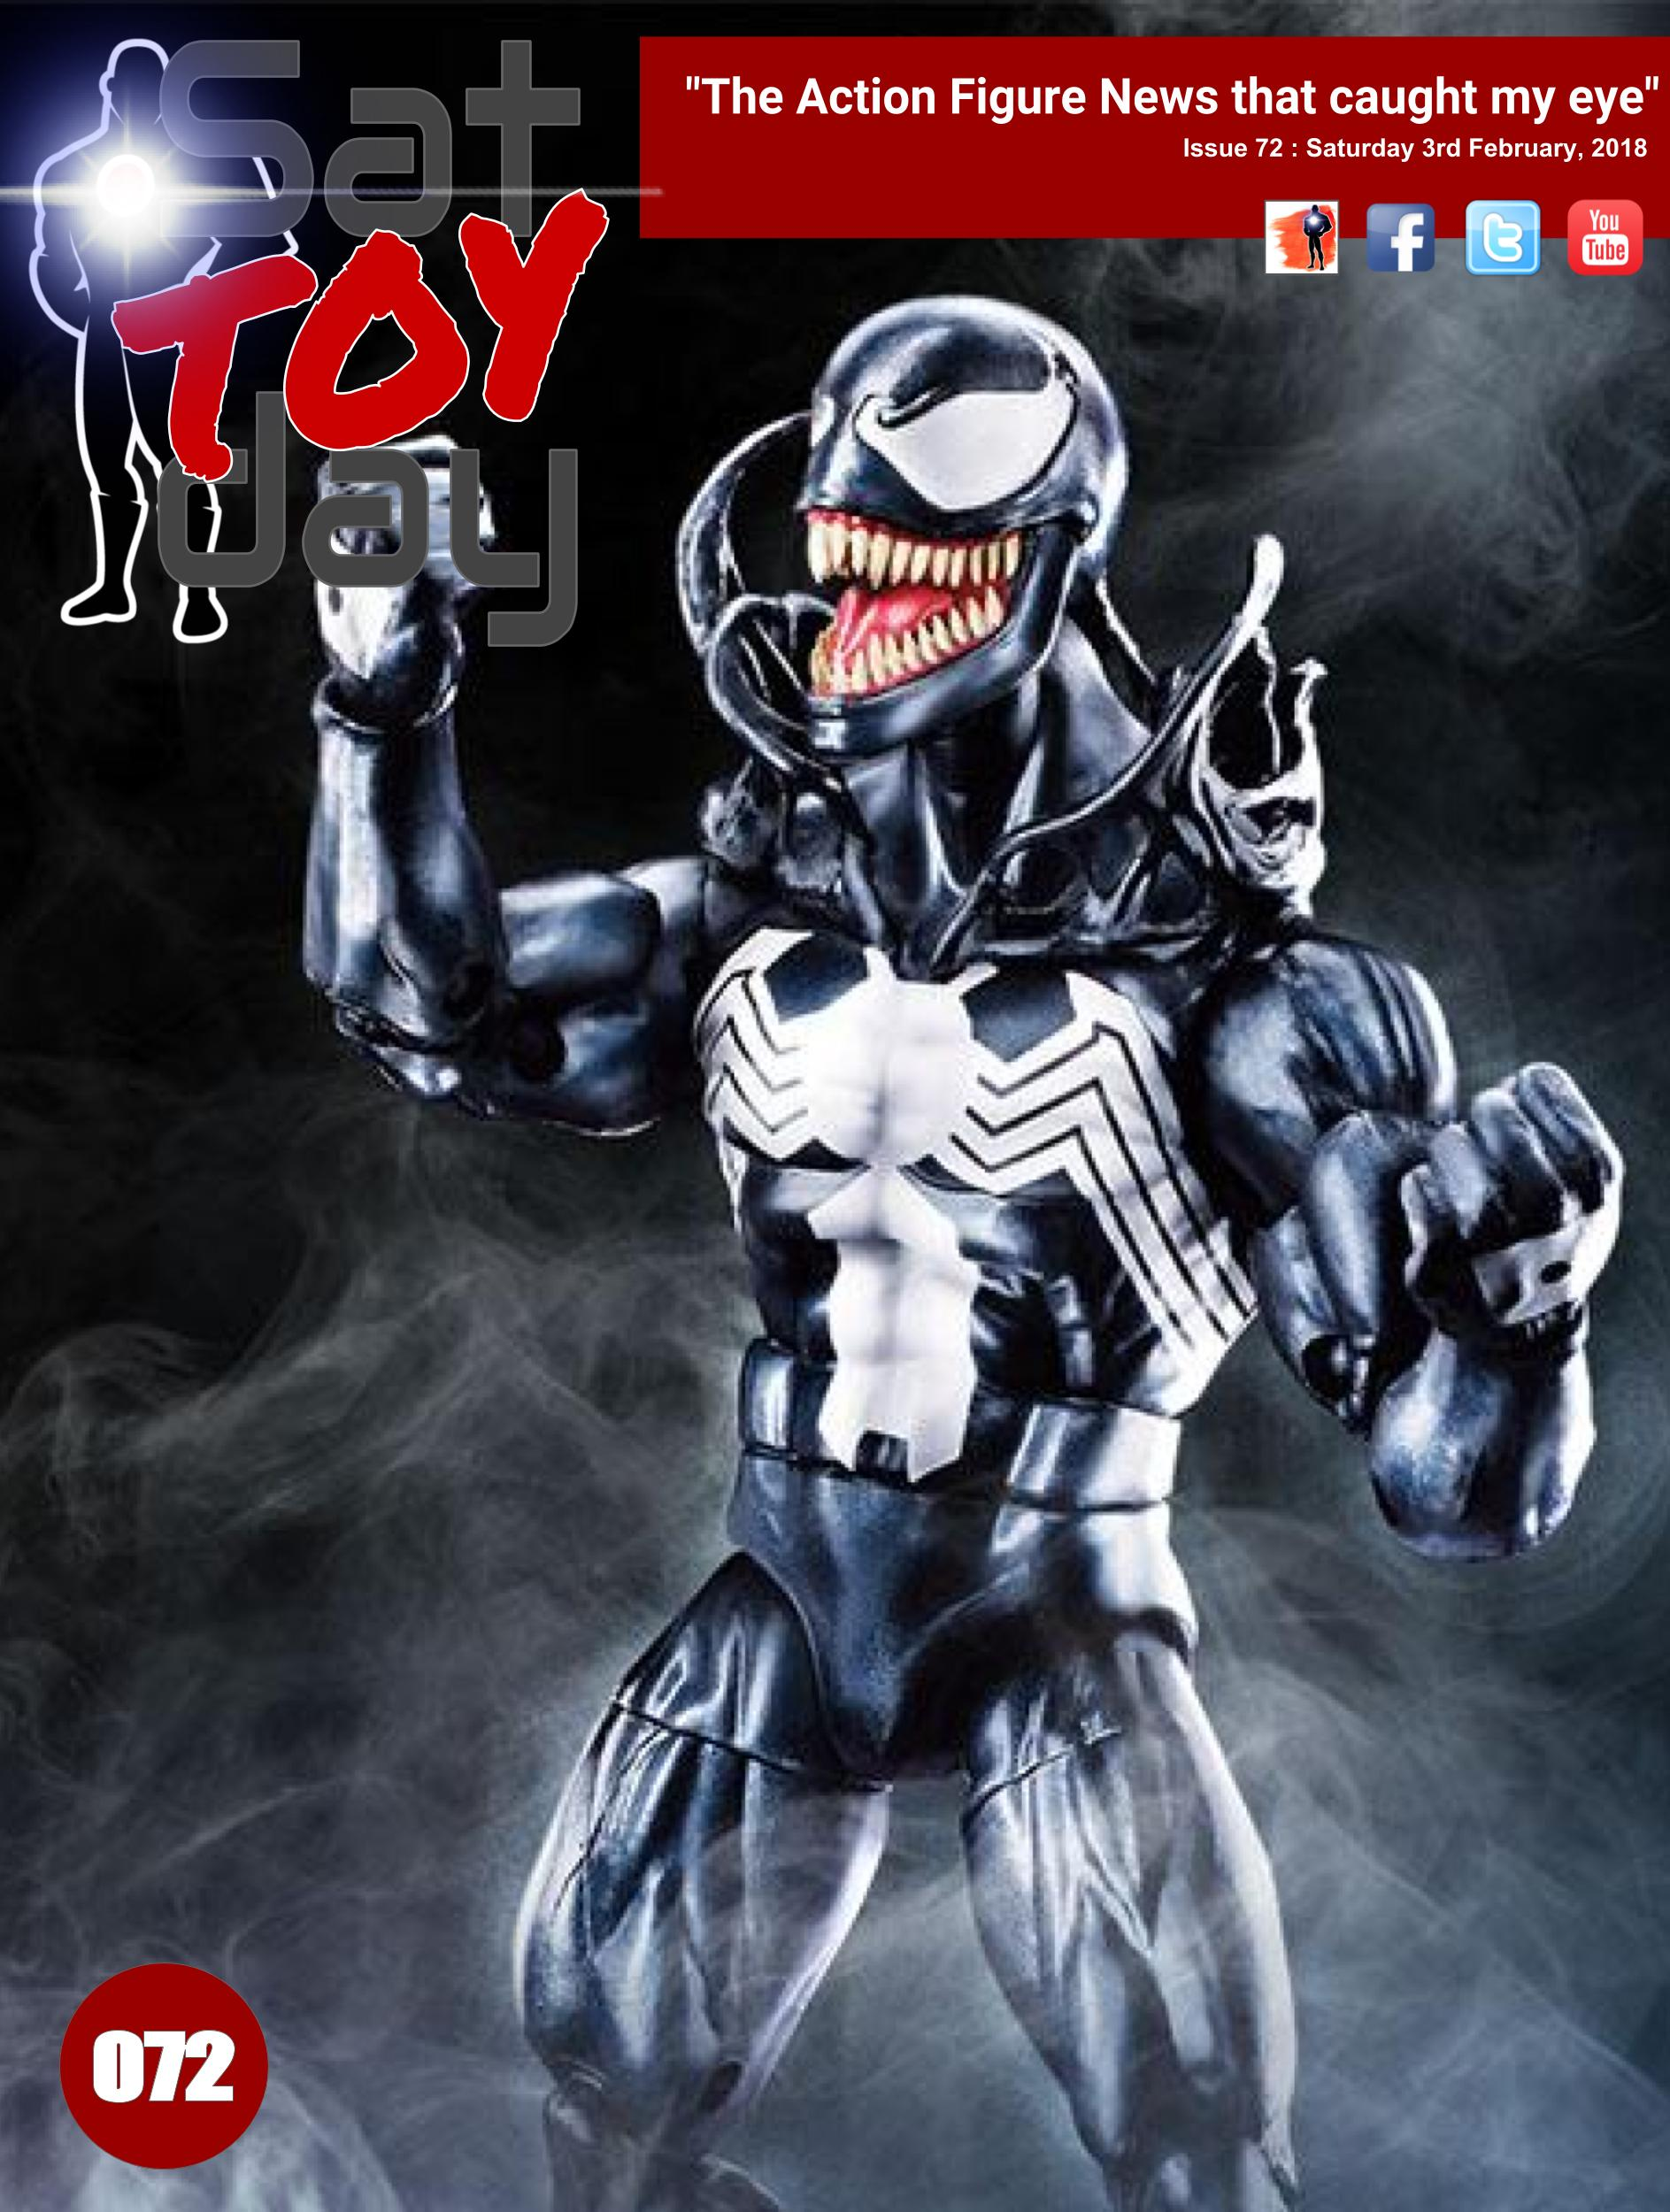 072 Action Figure Sat-TOY-day News, 3rd February 2018